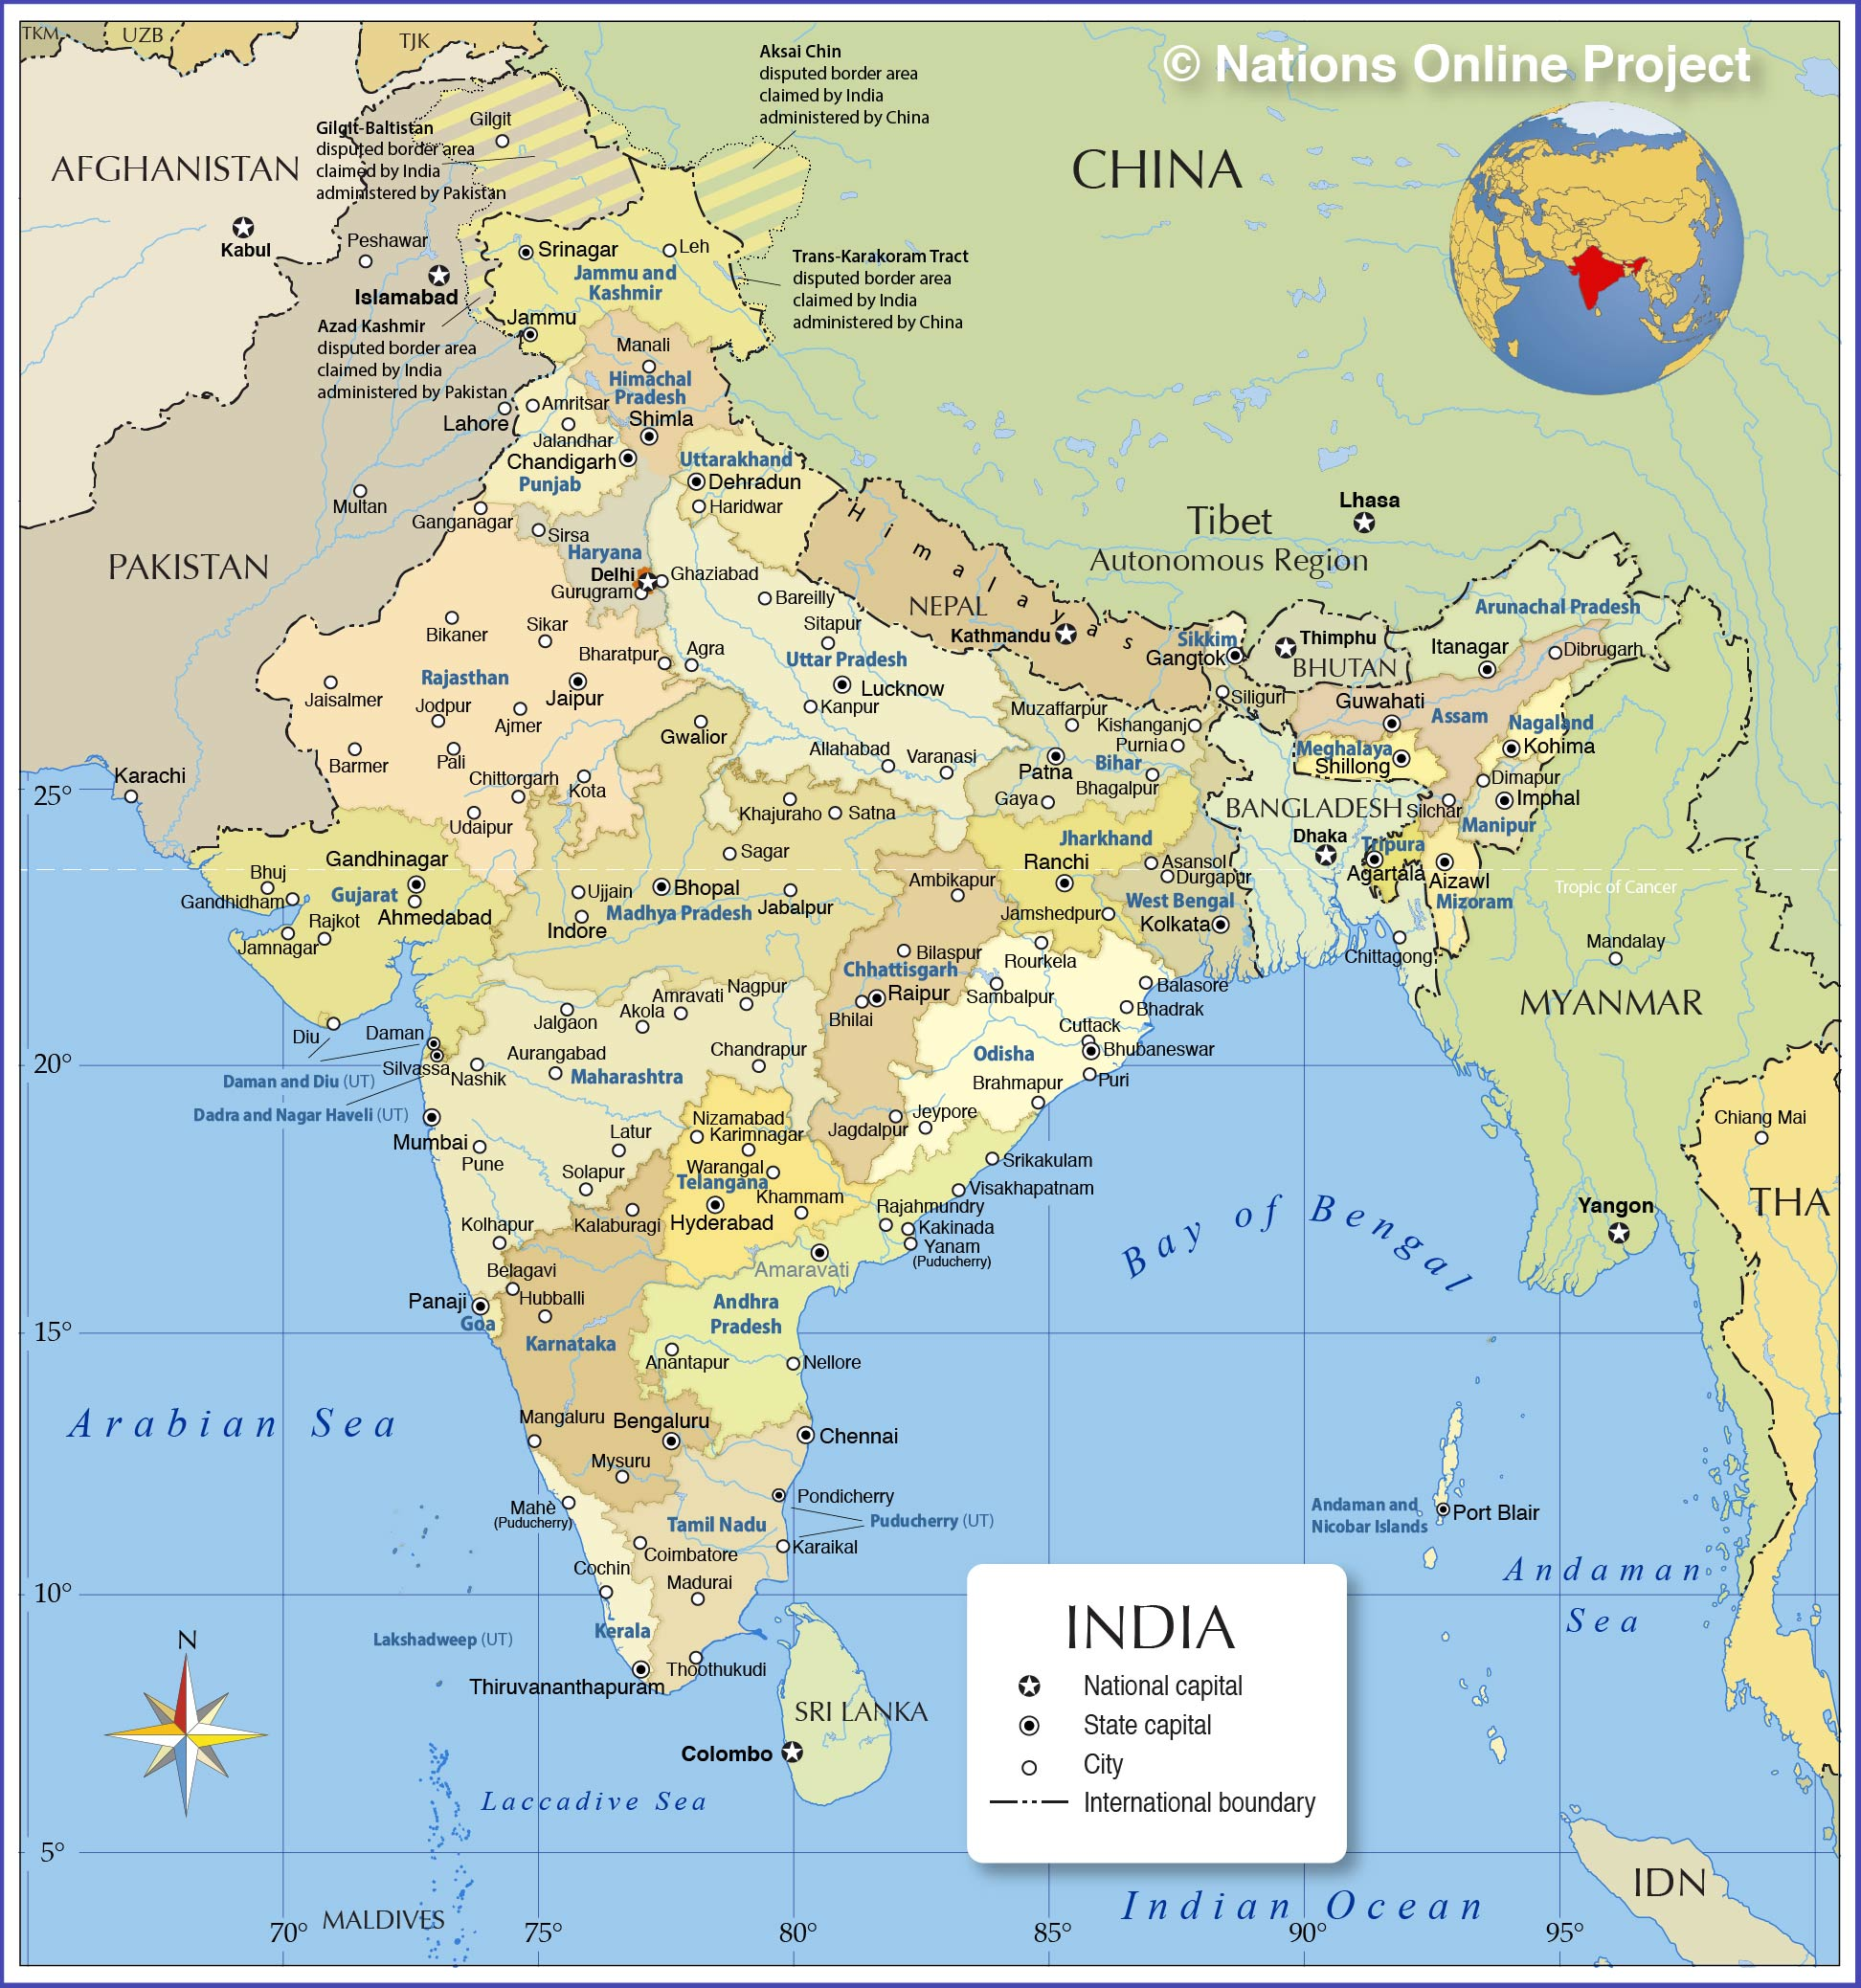 Maps Of Orissa, Map Of India, Maps Of Orissa